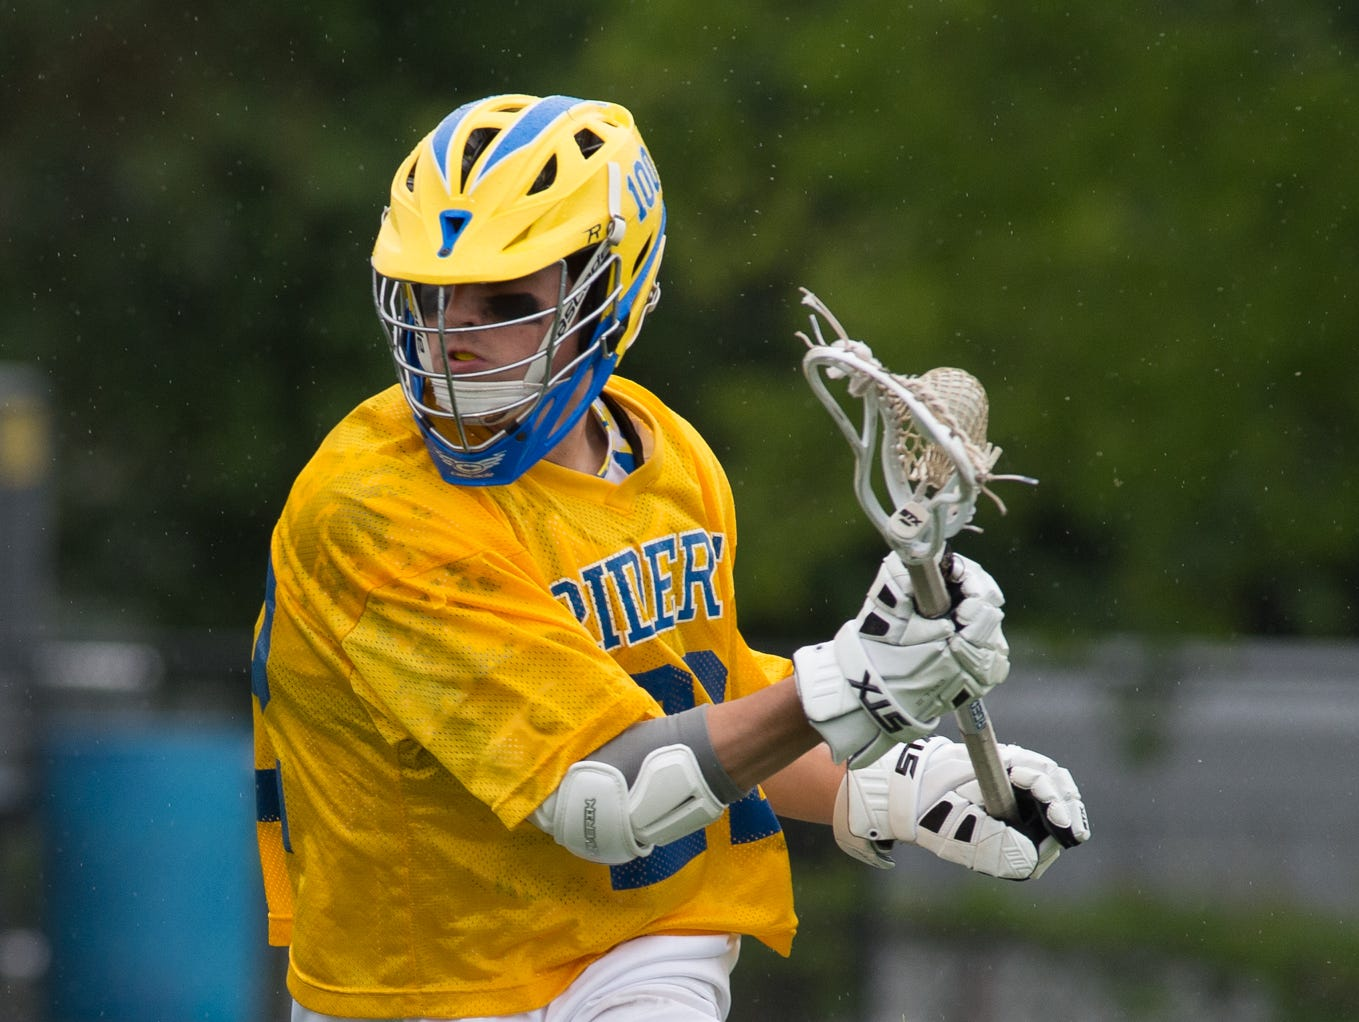 Caesar Rodney's Jacob Pangle (22) runs with the ball in their home game against Tower Hill.